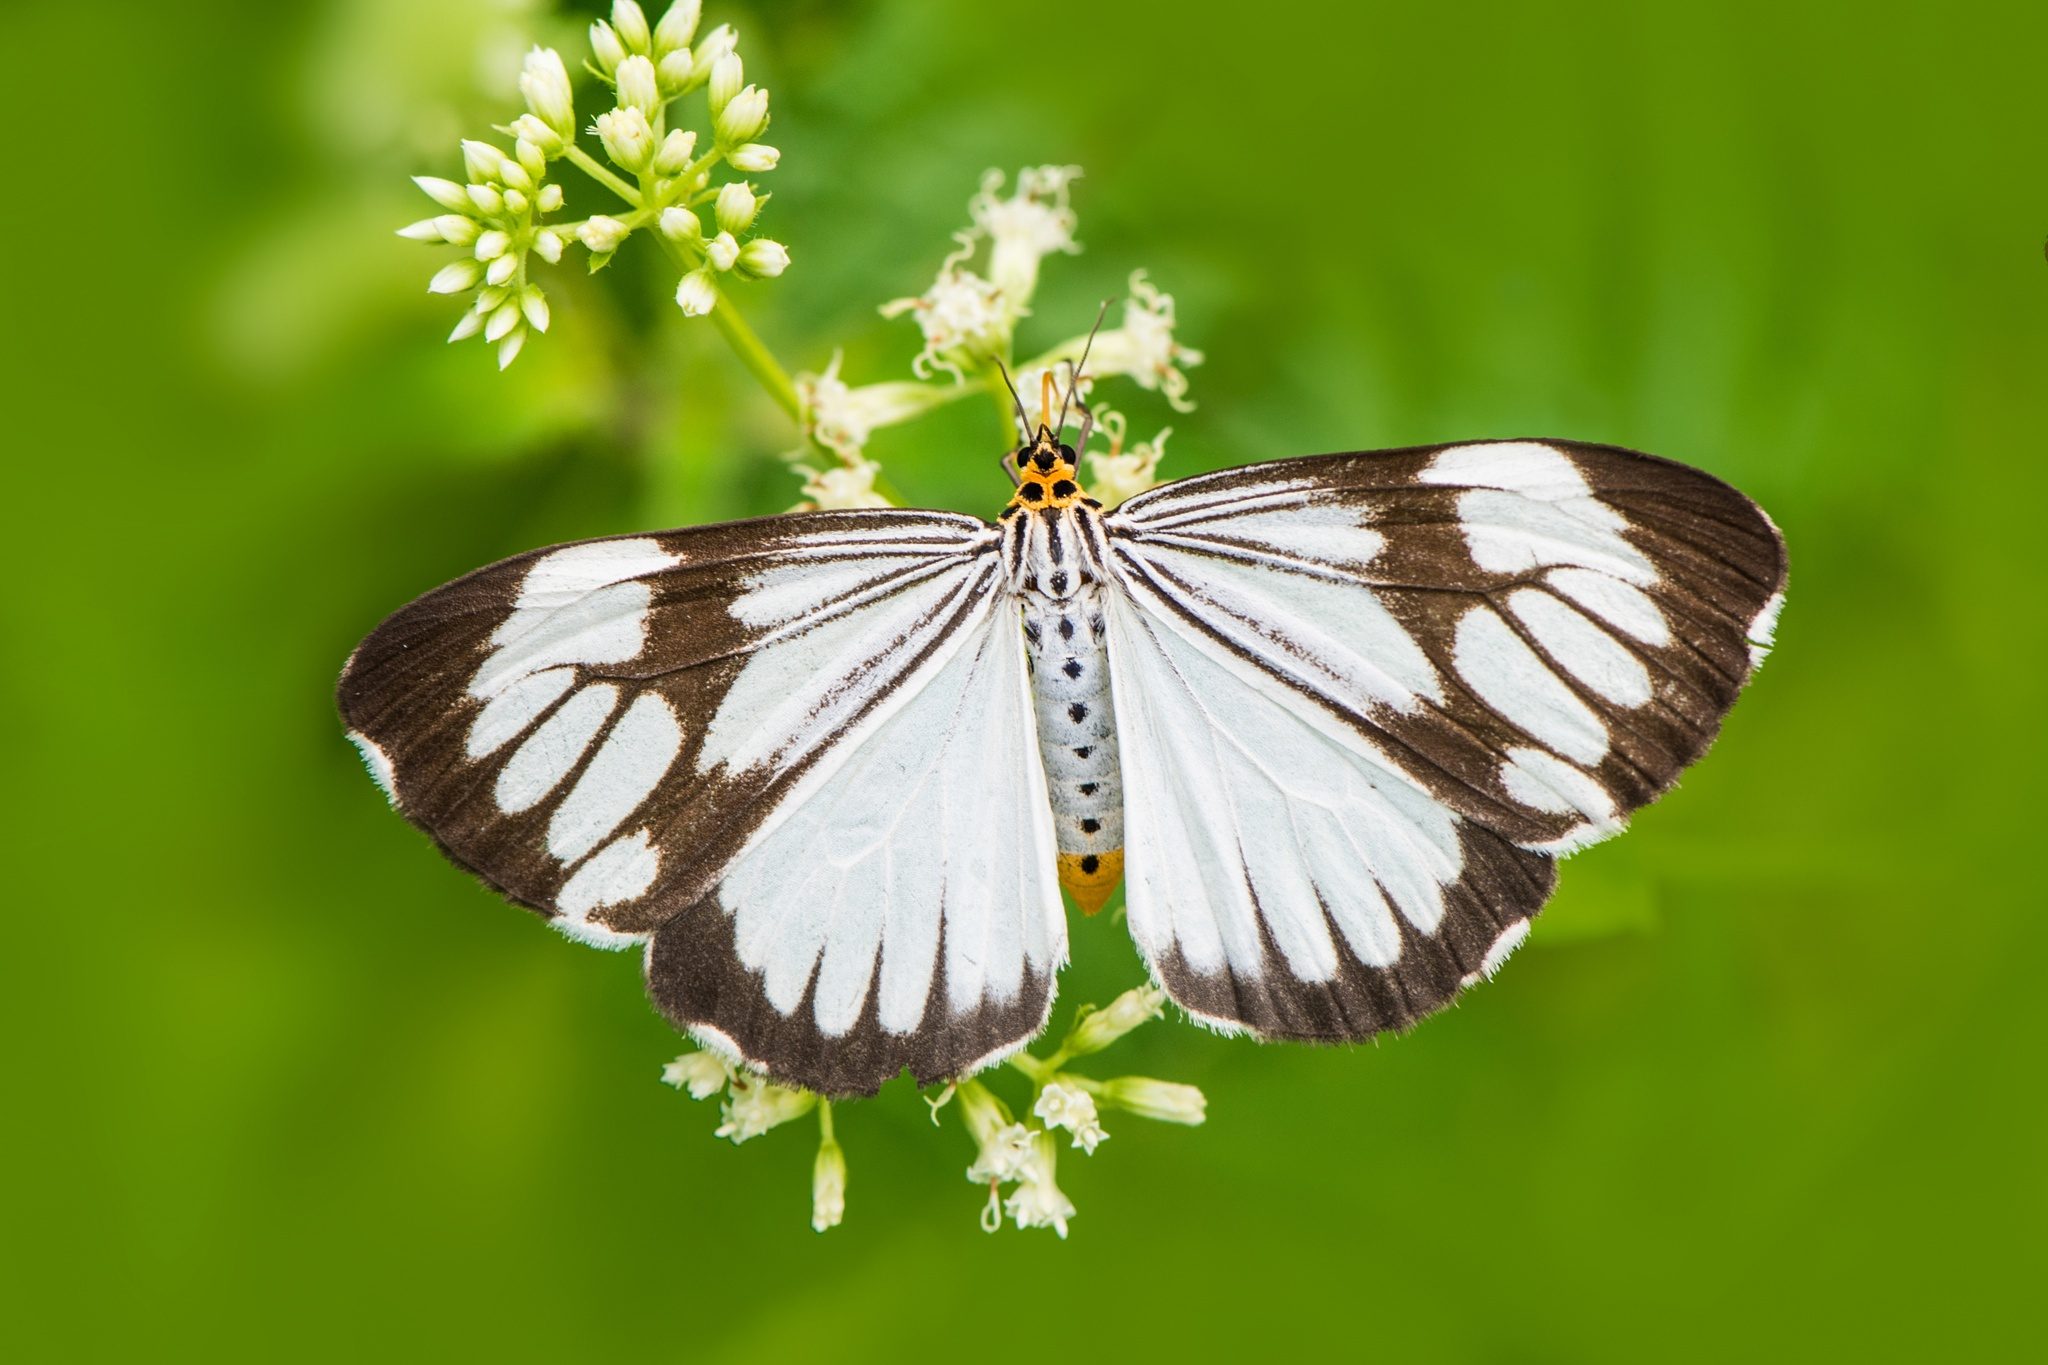 marbled White Tiger Moth by praveen g nair